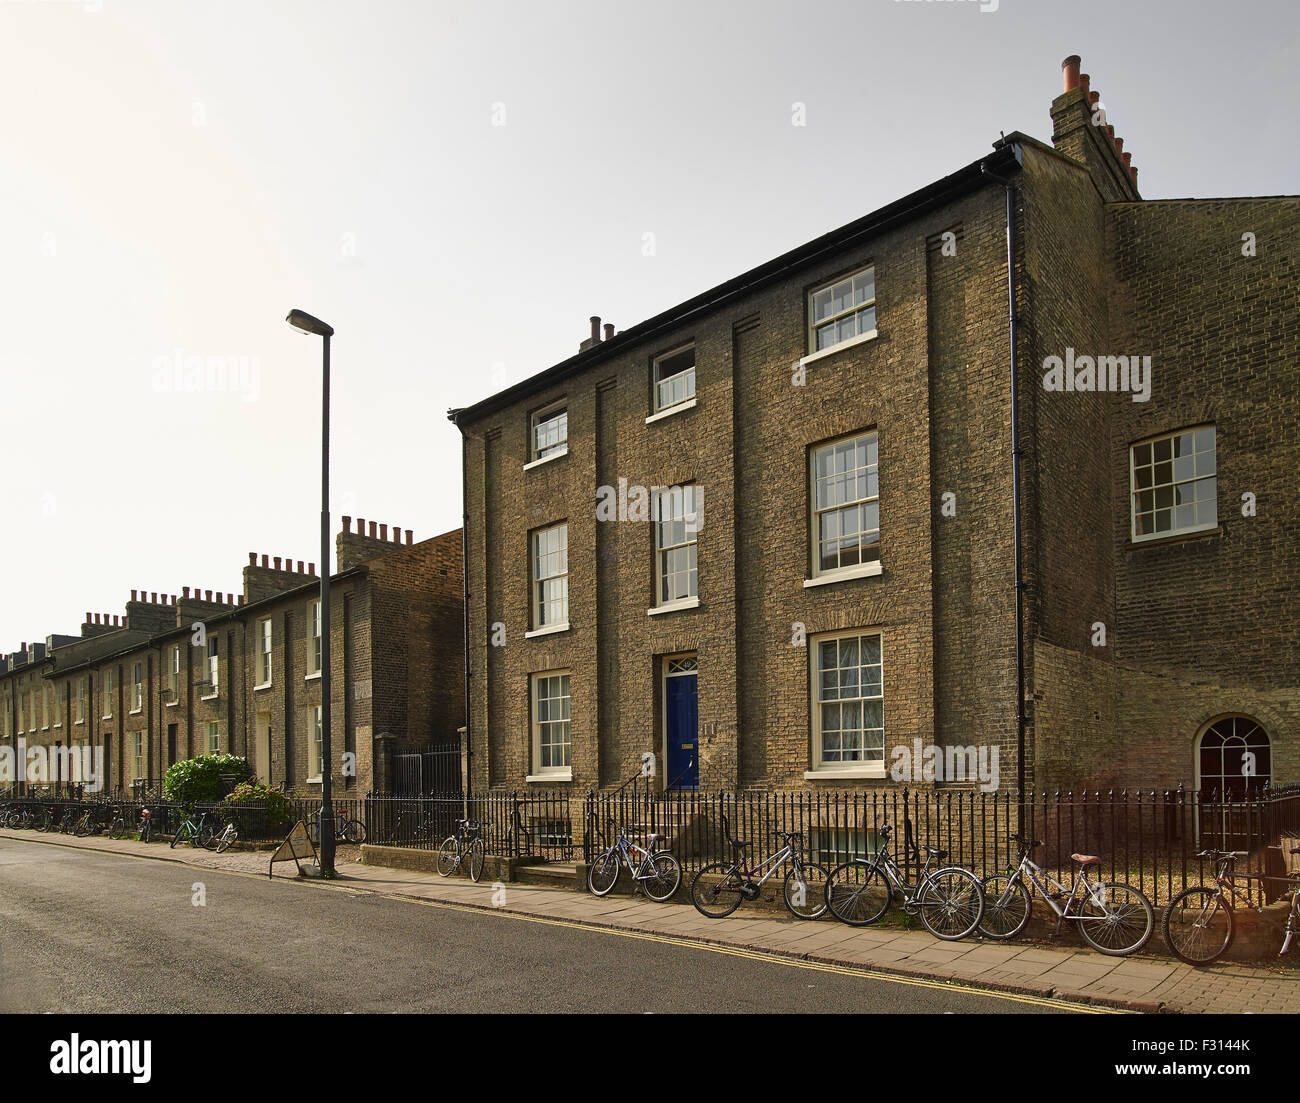 Cambridge, Jesus Lane - Stock Image